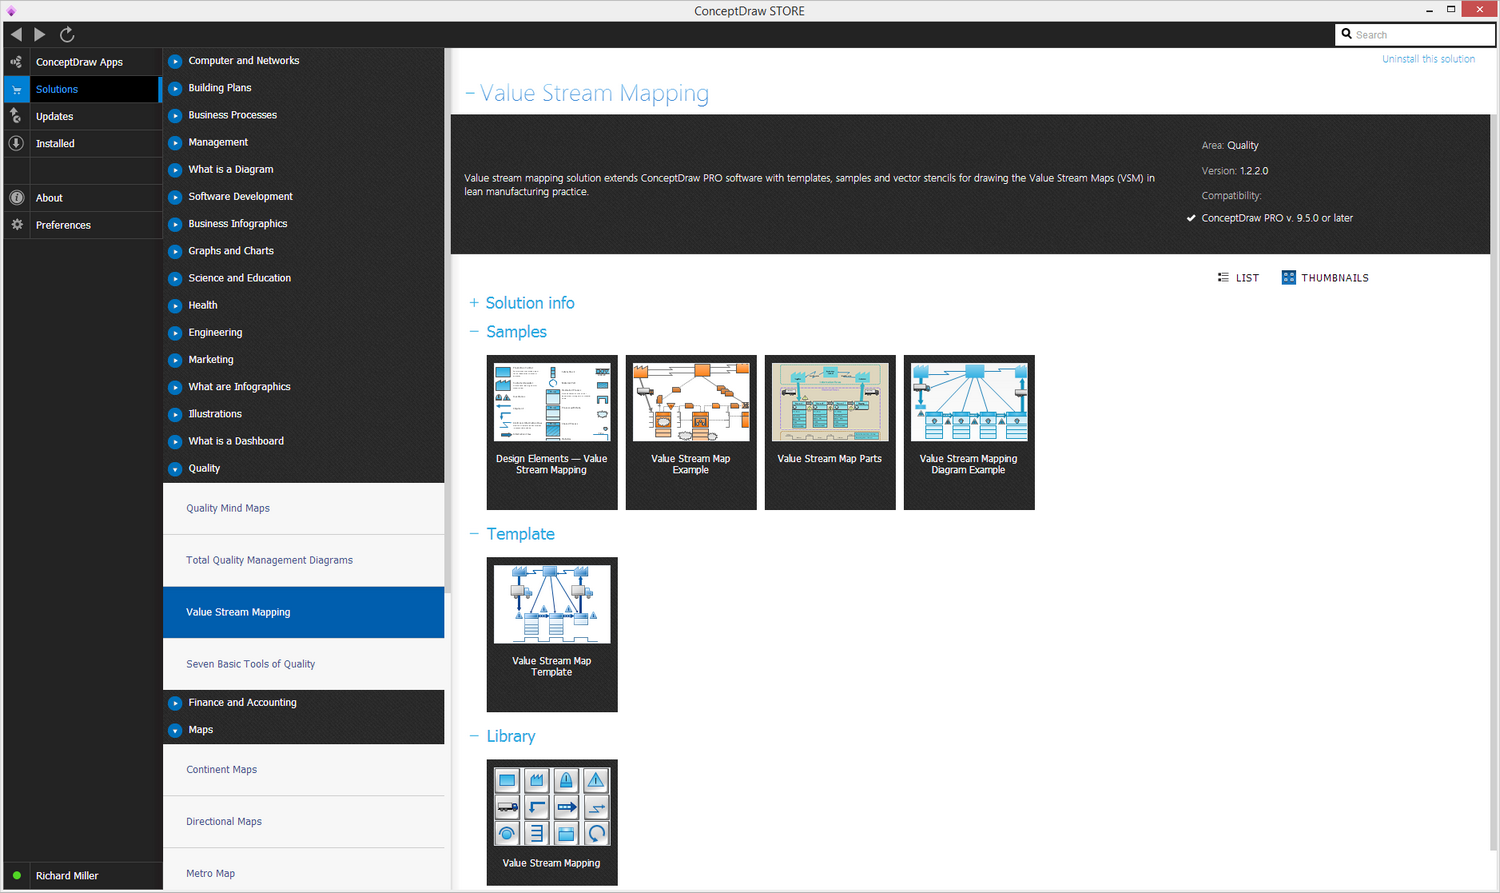 Value Stream Mapping Solution   ConceptDraw